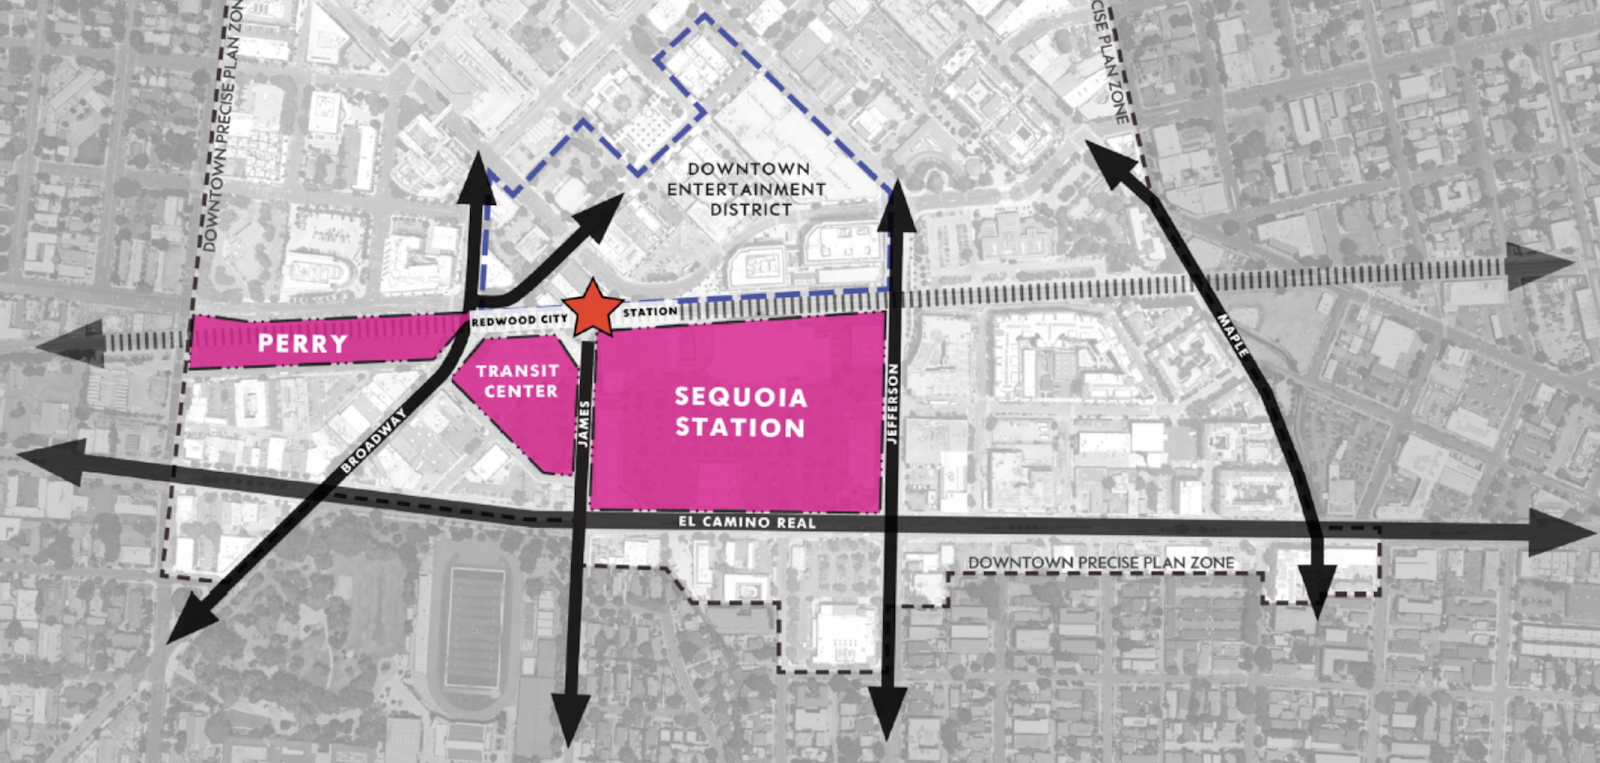 Monday, 2/24: Support housing at the Sequoia Station site